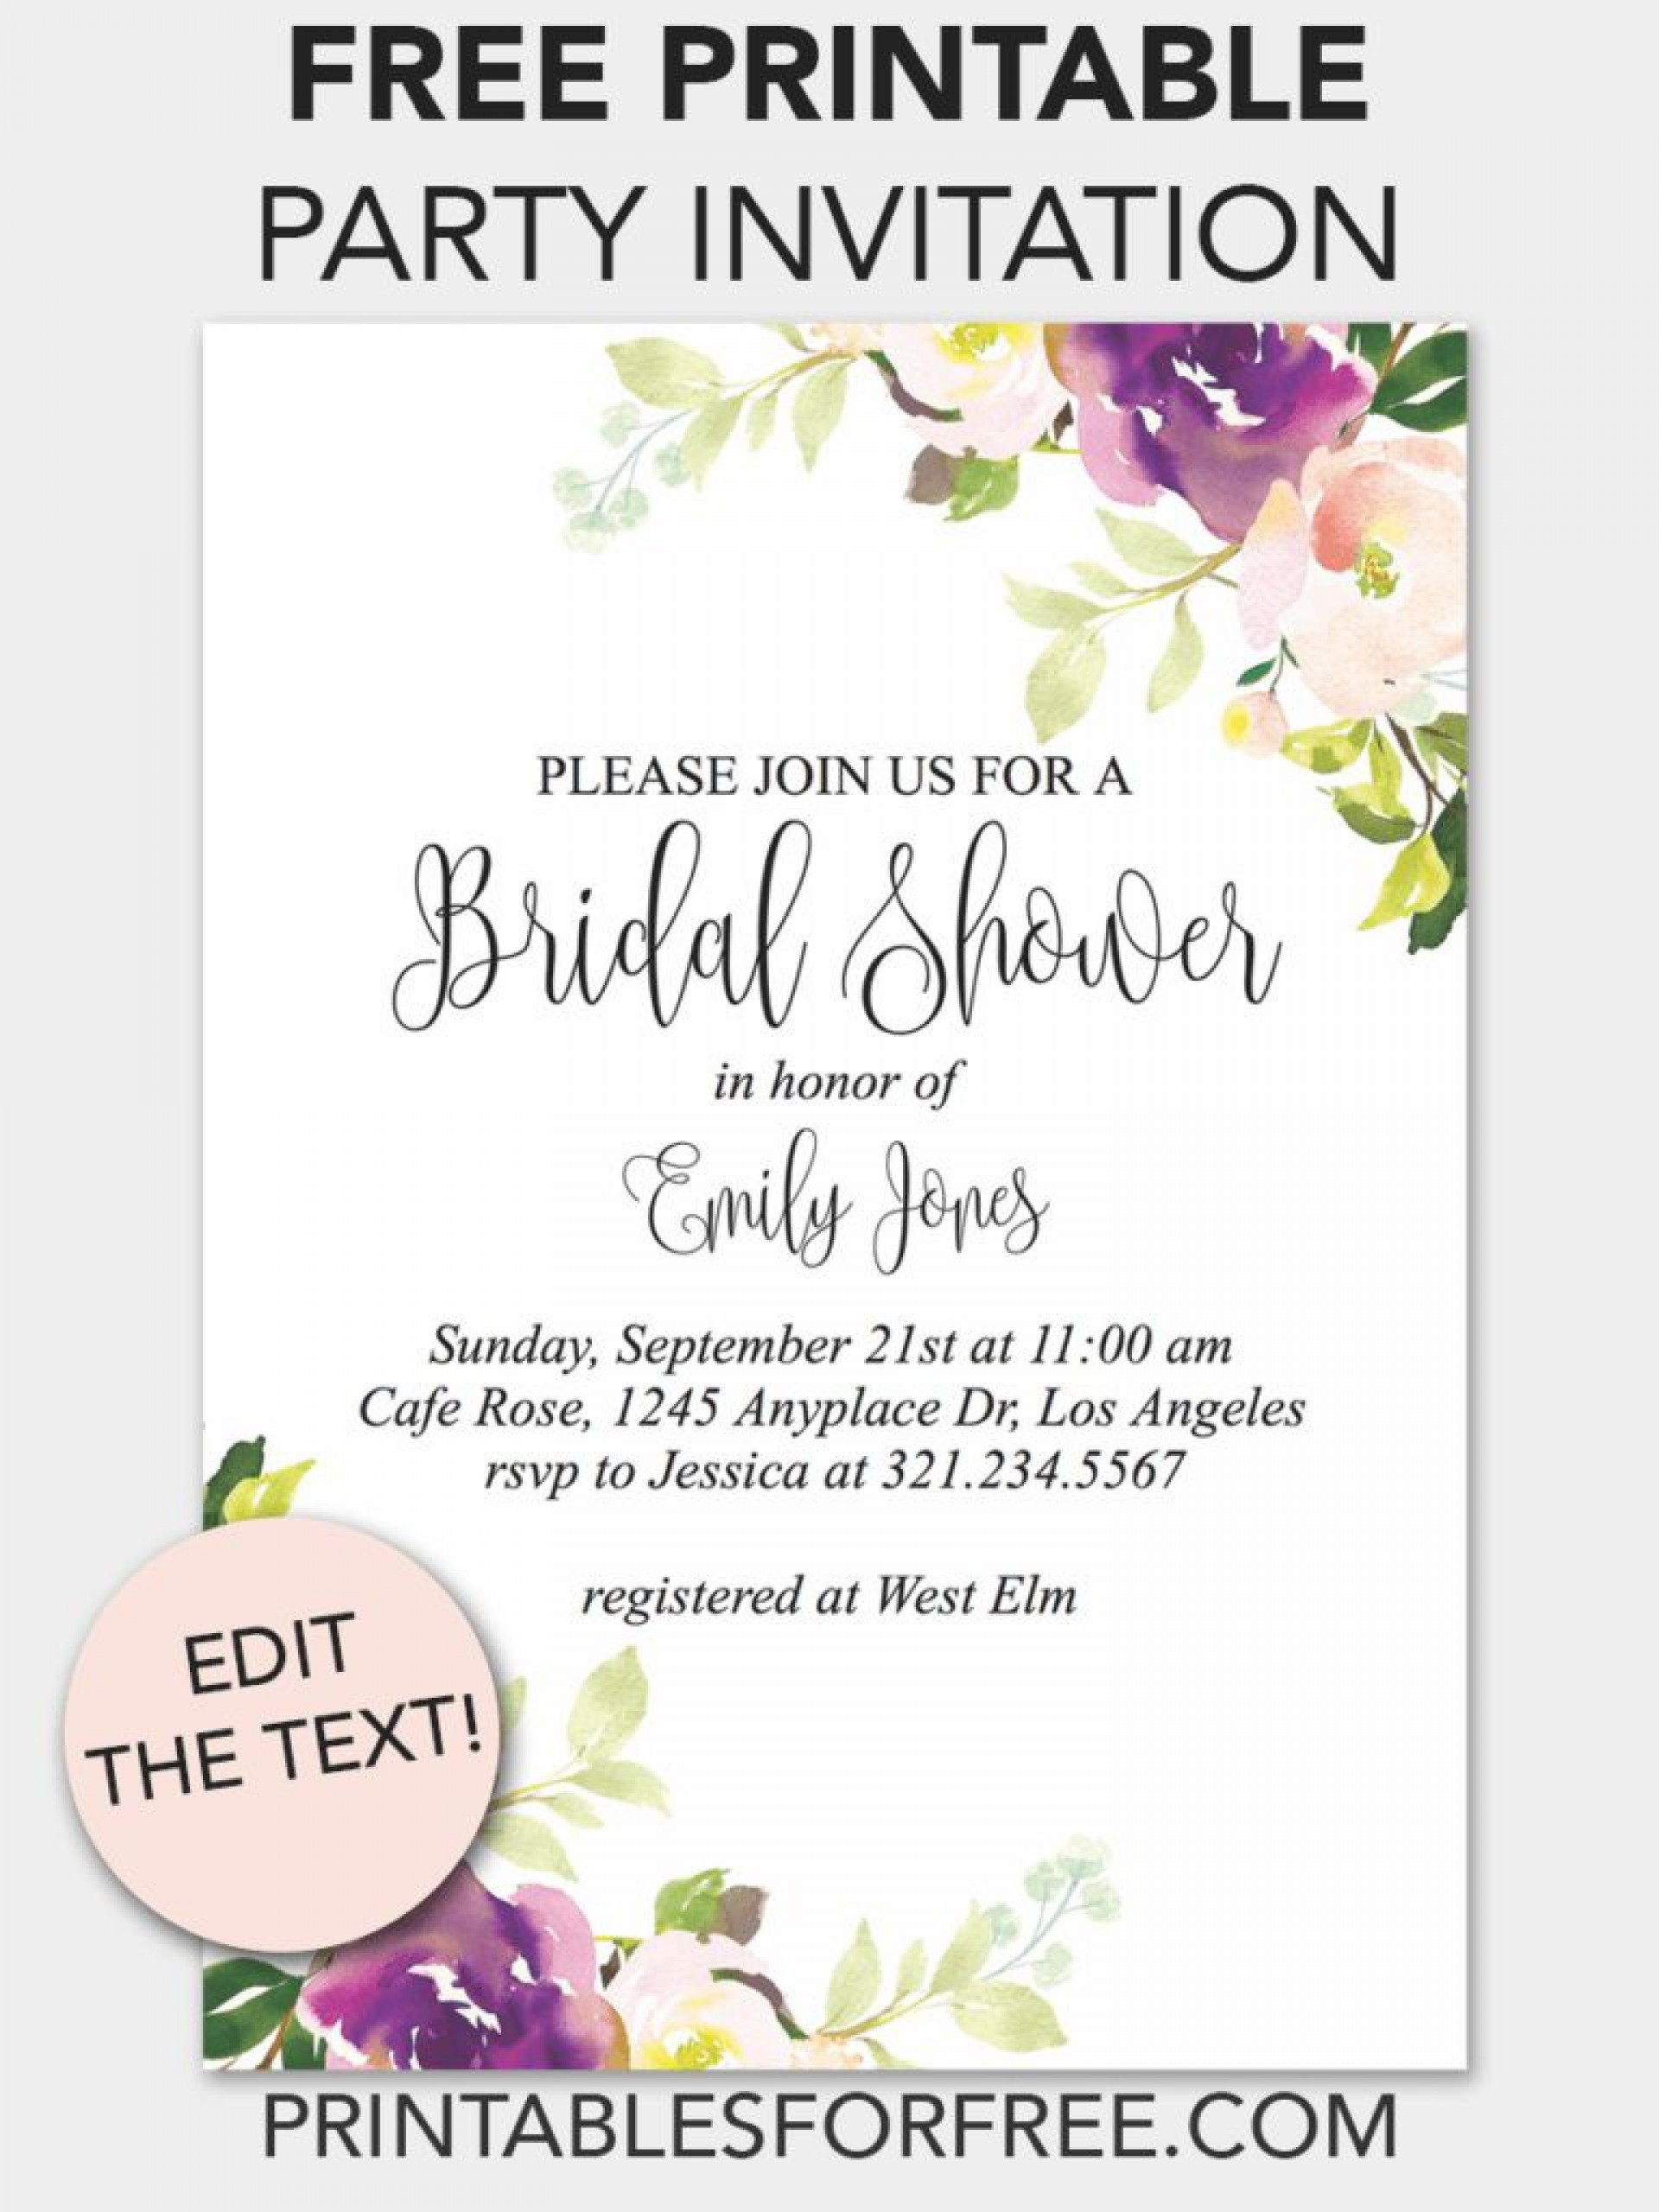 002 Incredible Free Bridal Shower Invite Template Concept  Templates Invitation To Print Online Wedding For Microsoft Word1920